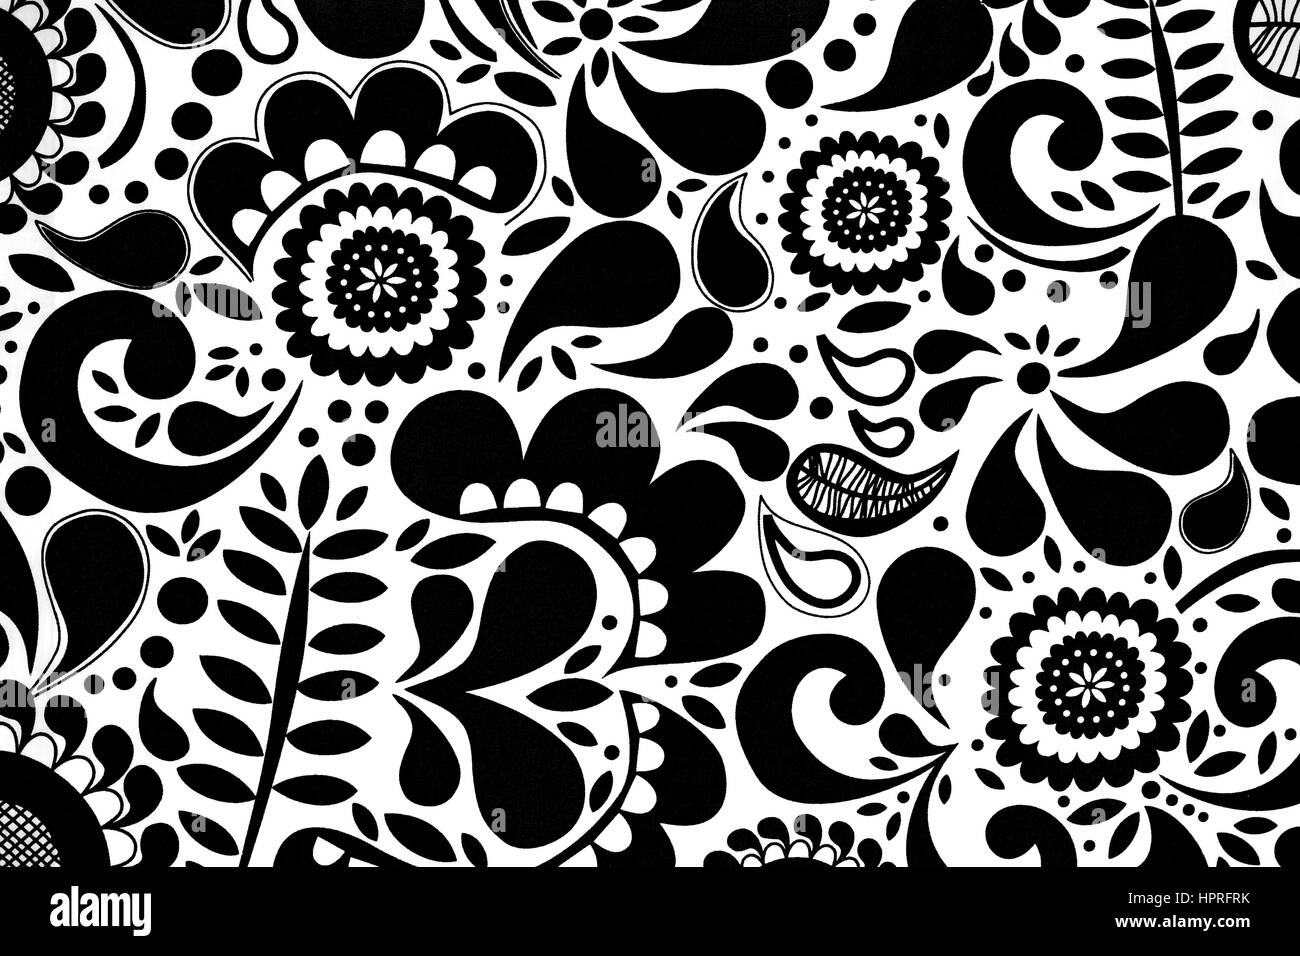 abstract seamless black and white floral pattern stock image